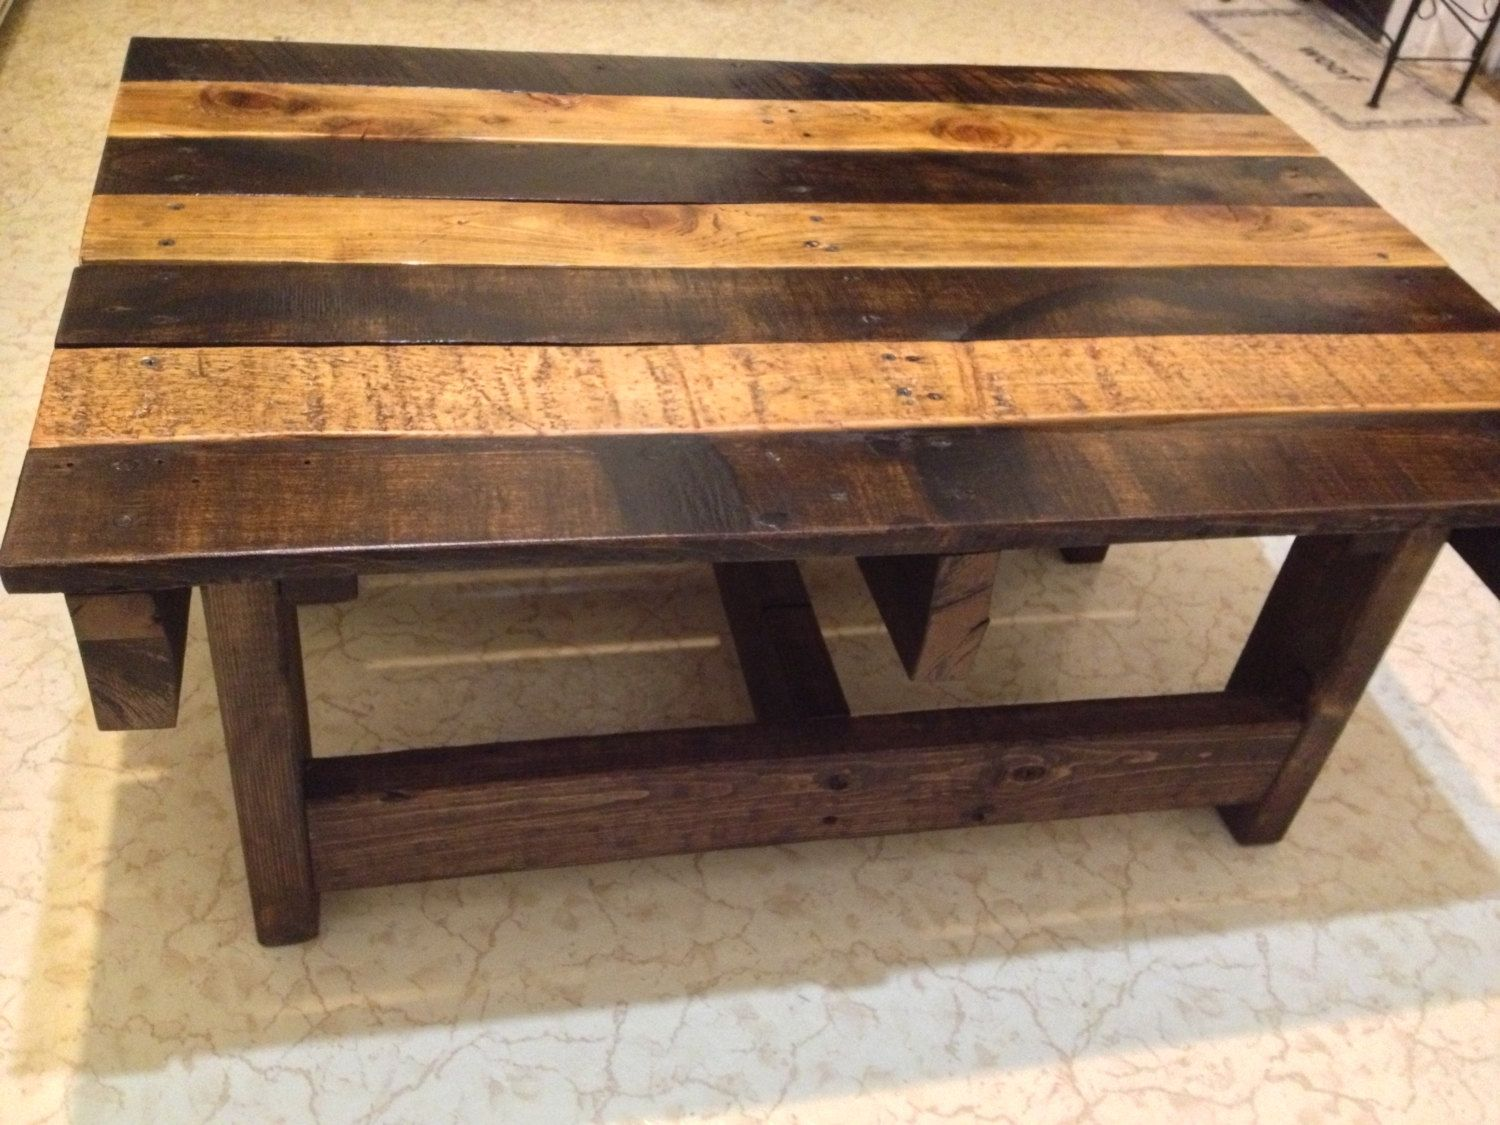 Hand Crafted Handmade Reclaimed Rustic Pallet Wood Coffee Table By Kevin Davis Woodwork: recycled wood coffee table